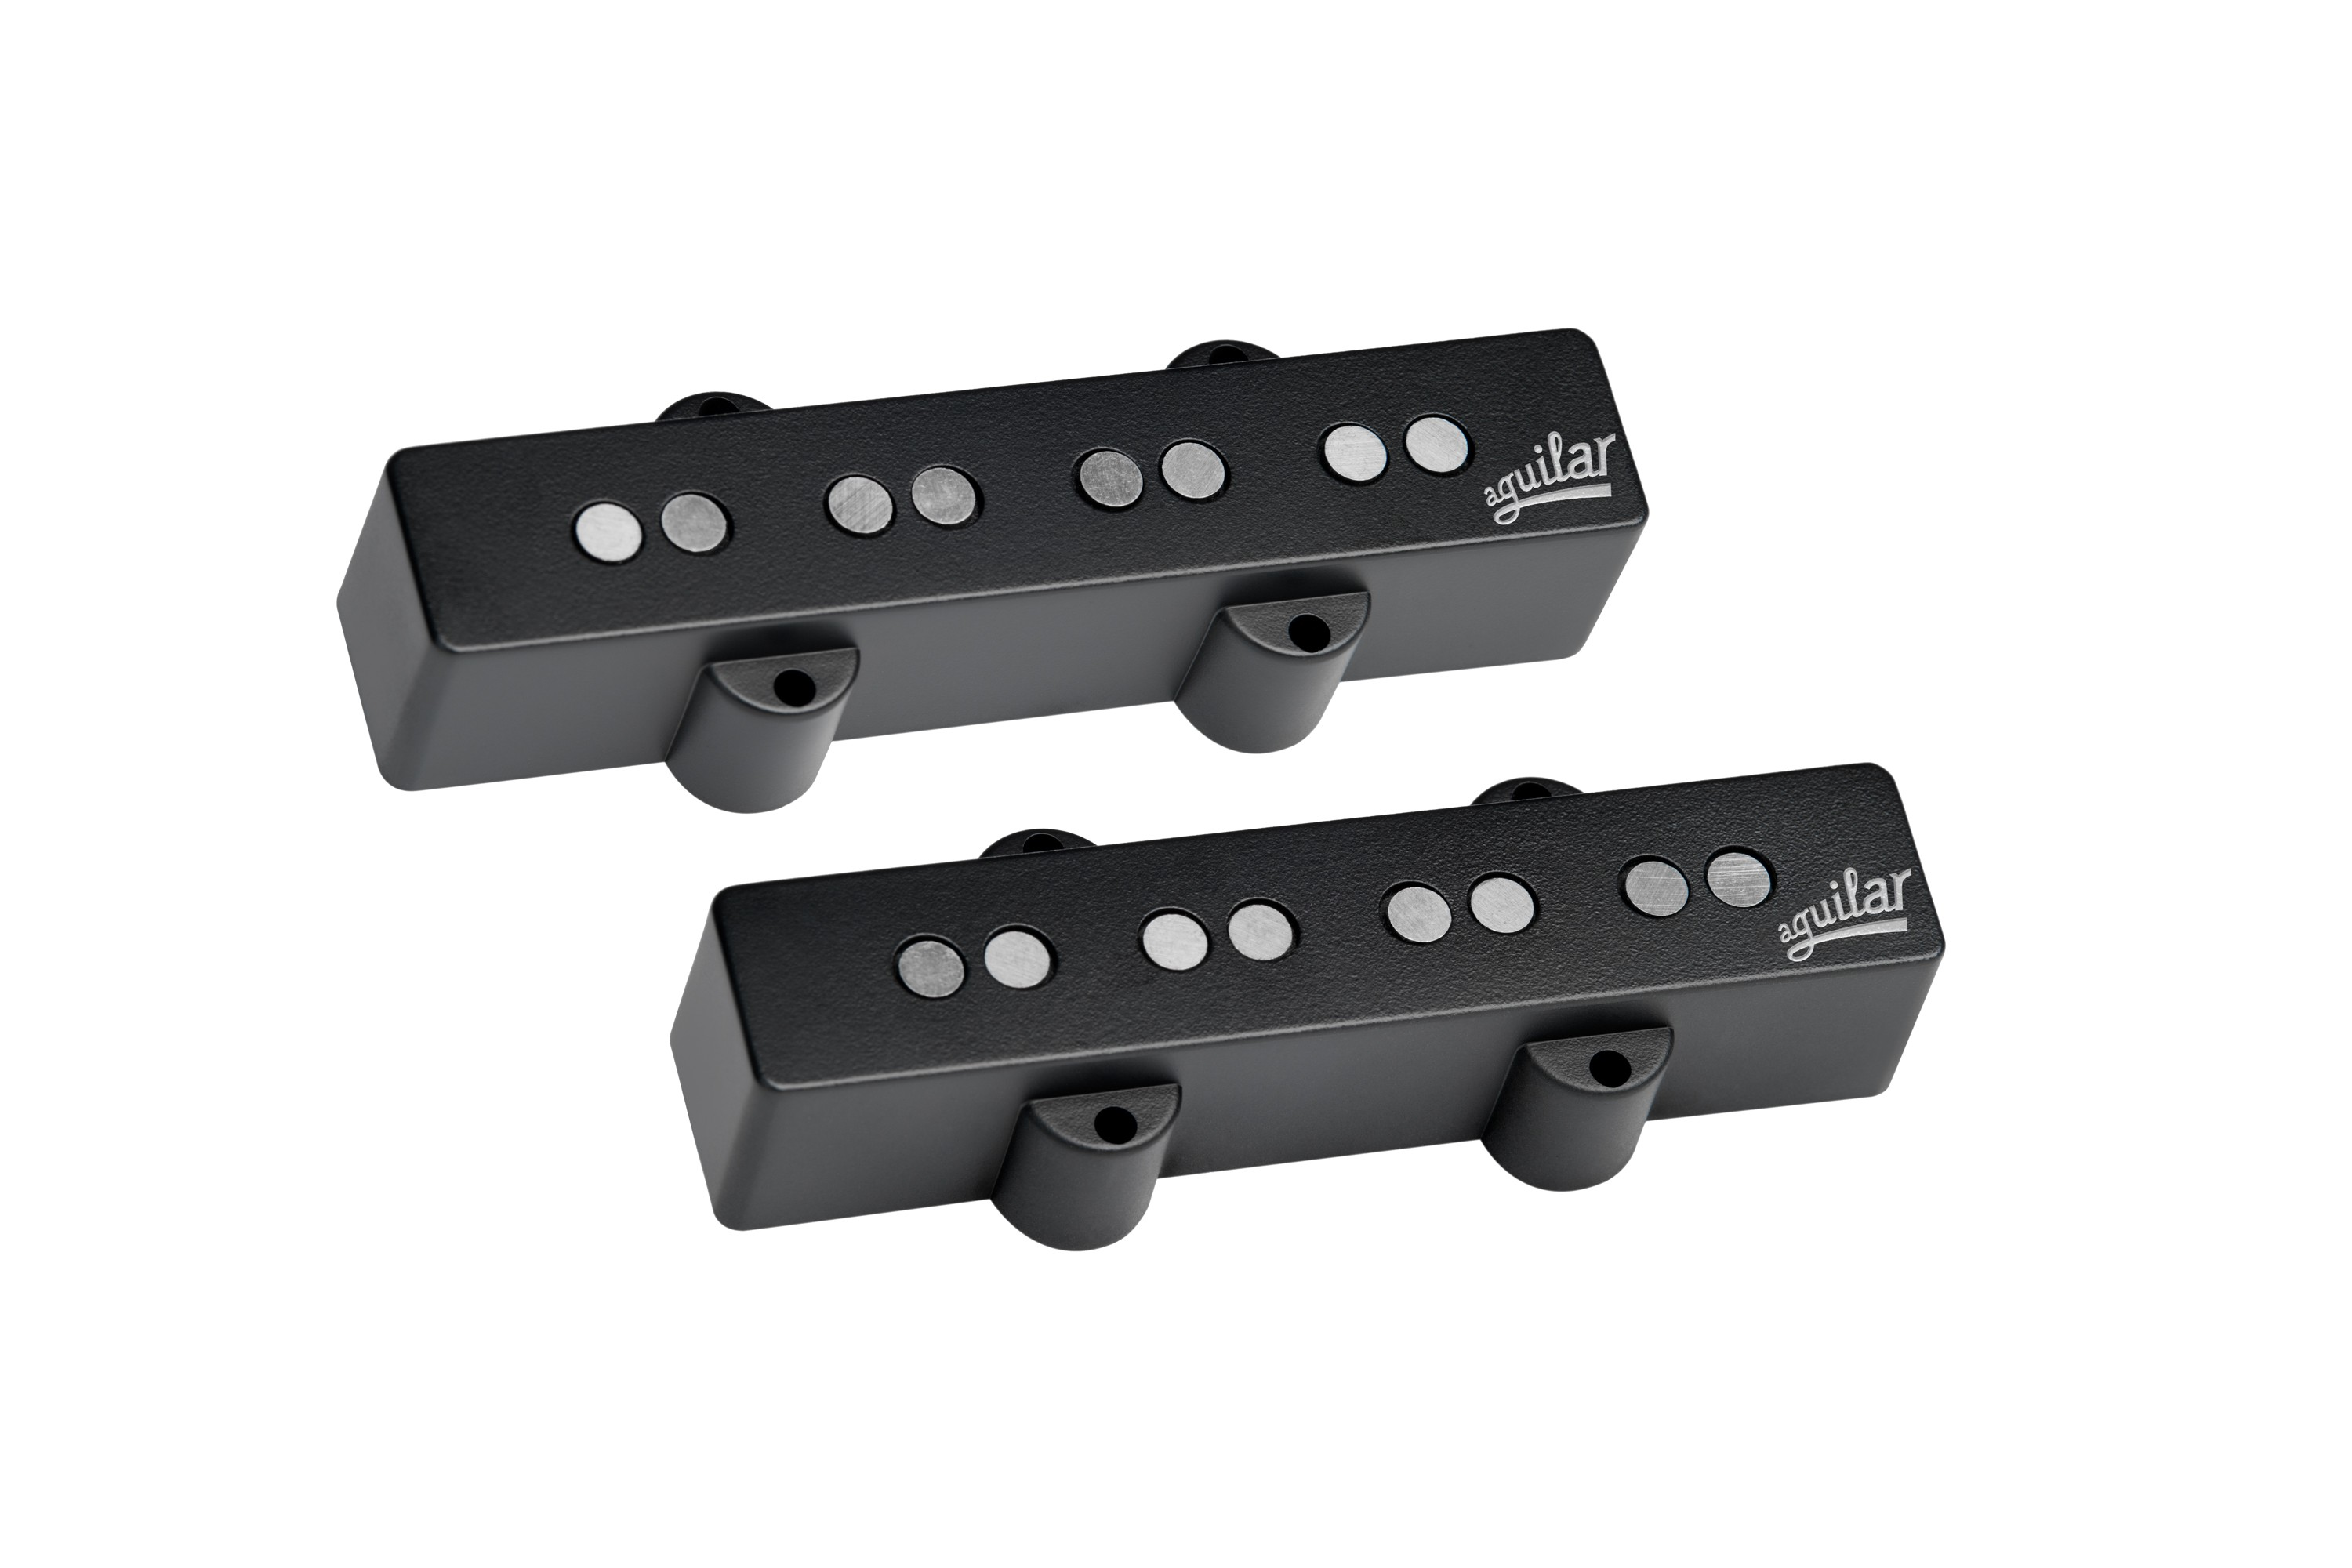 Bass Pickups Aguilar : aguilar 70 39 s era jazz bass pickups best bass gear ~ Vivirlamusica.com Haus und Dekorationen